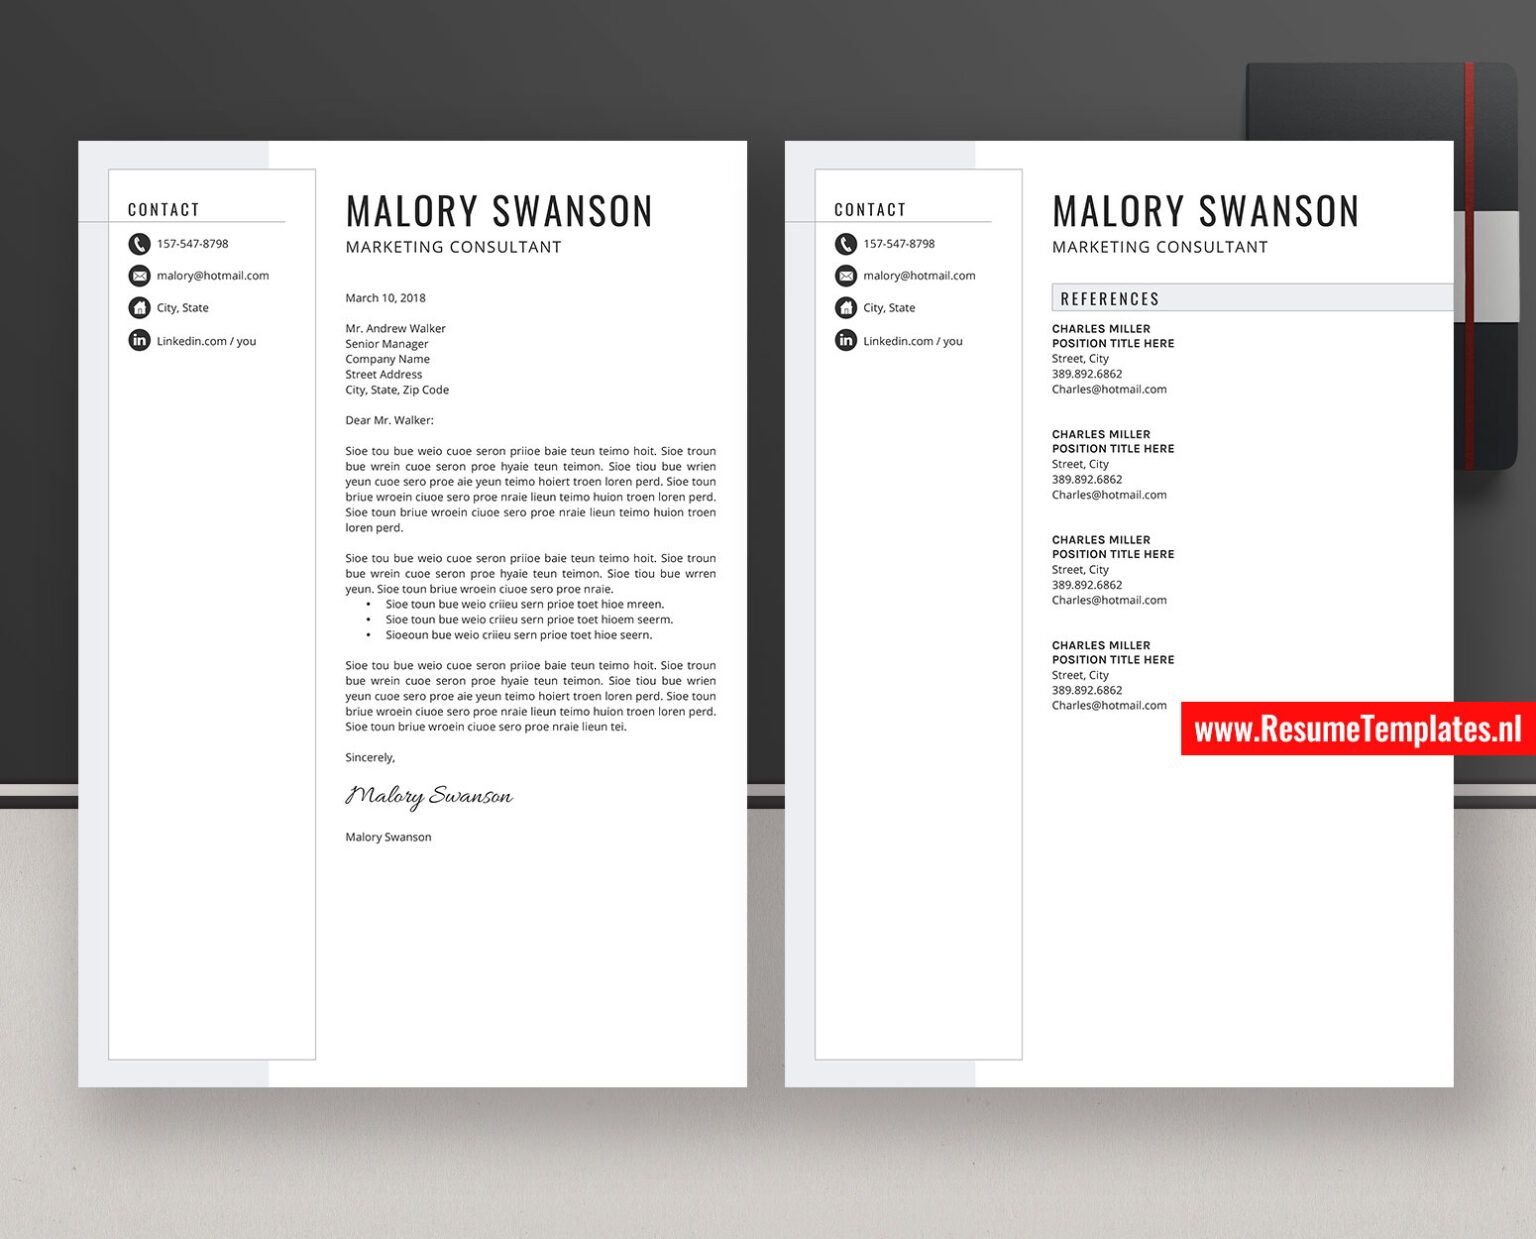 Simple Resume with Photo Two page Resume Curriculum Vitae for Word One page Resume Clean CV Design Resume for student